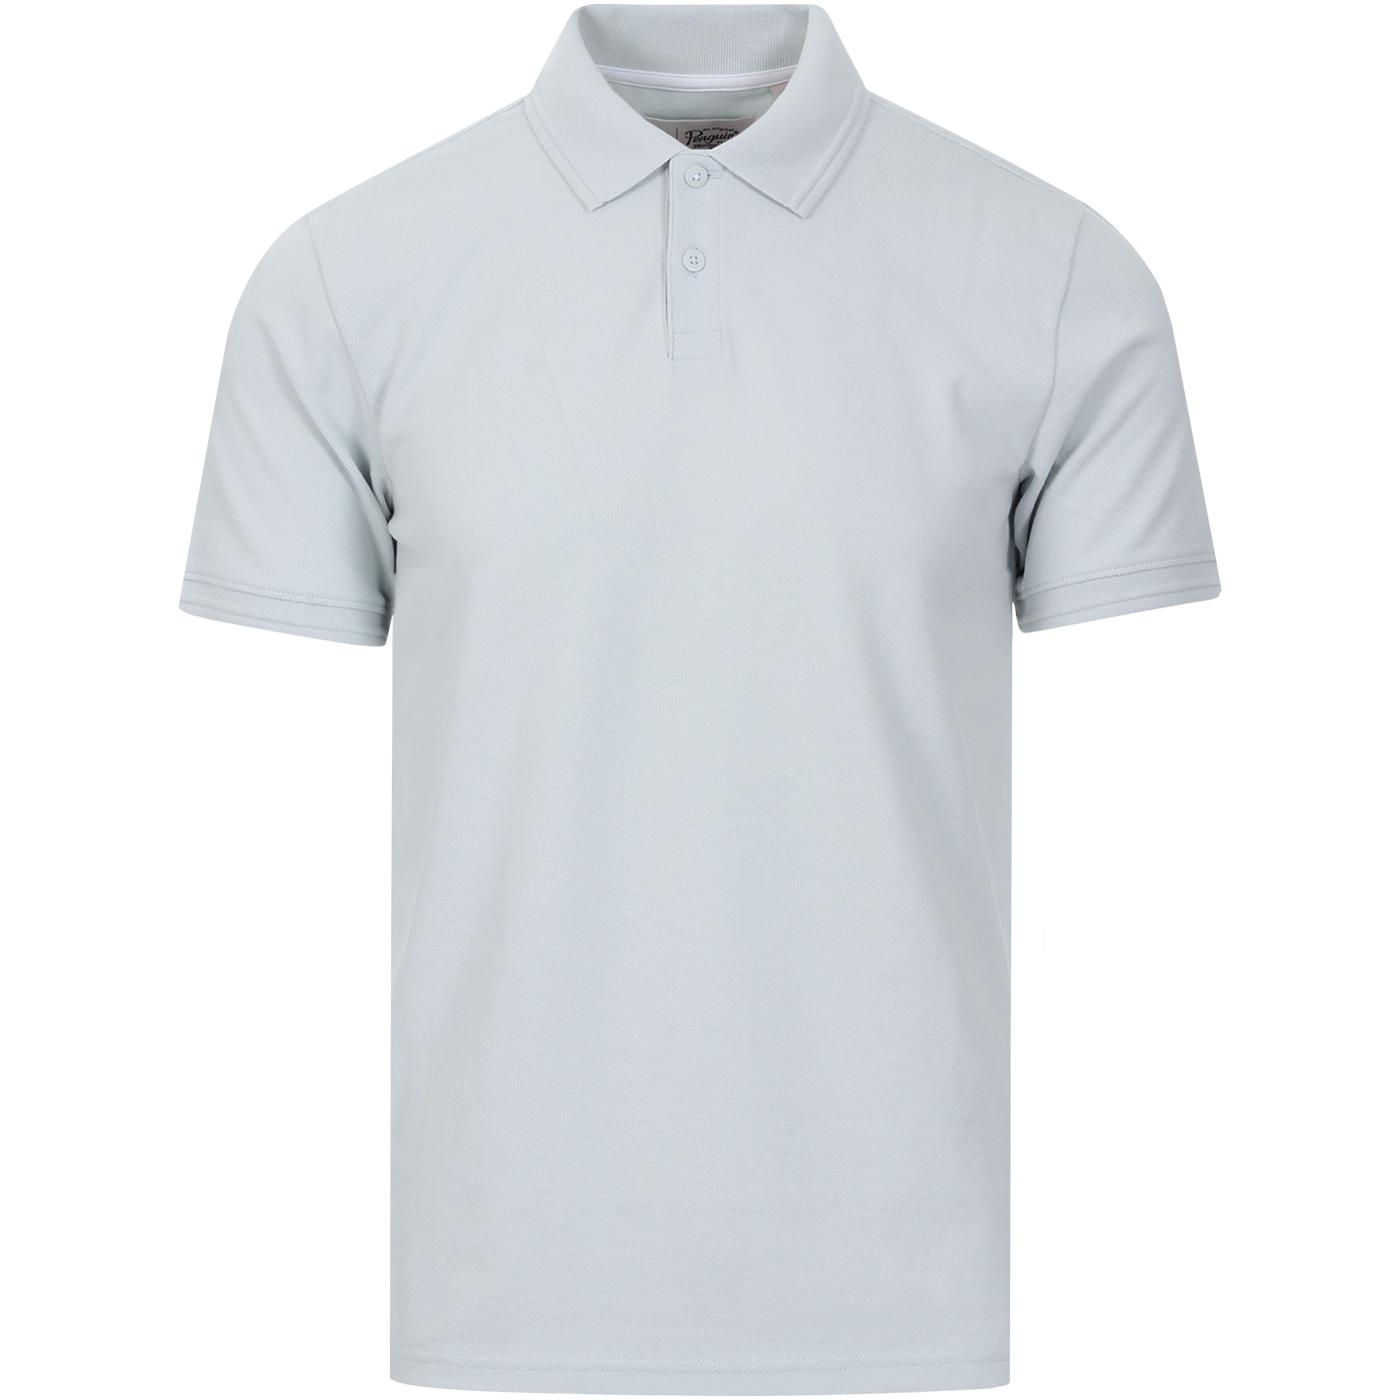 ORIGINAL PENGUIN Raised Rib Retro Mod Polo Shirt B